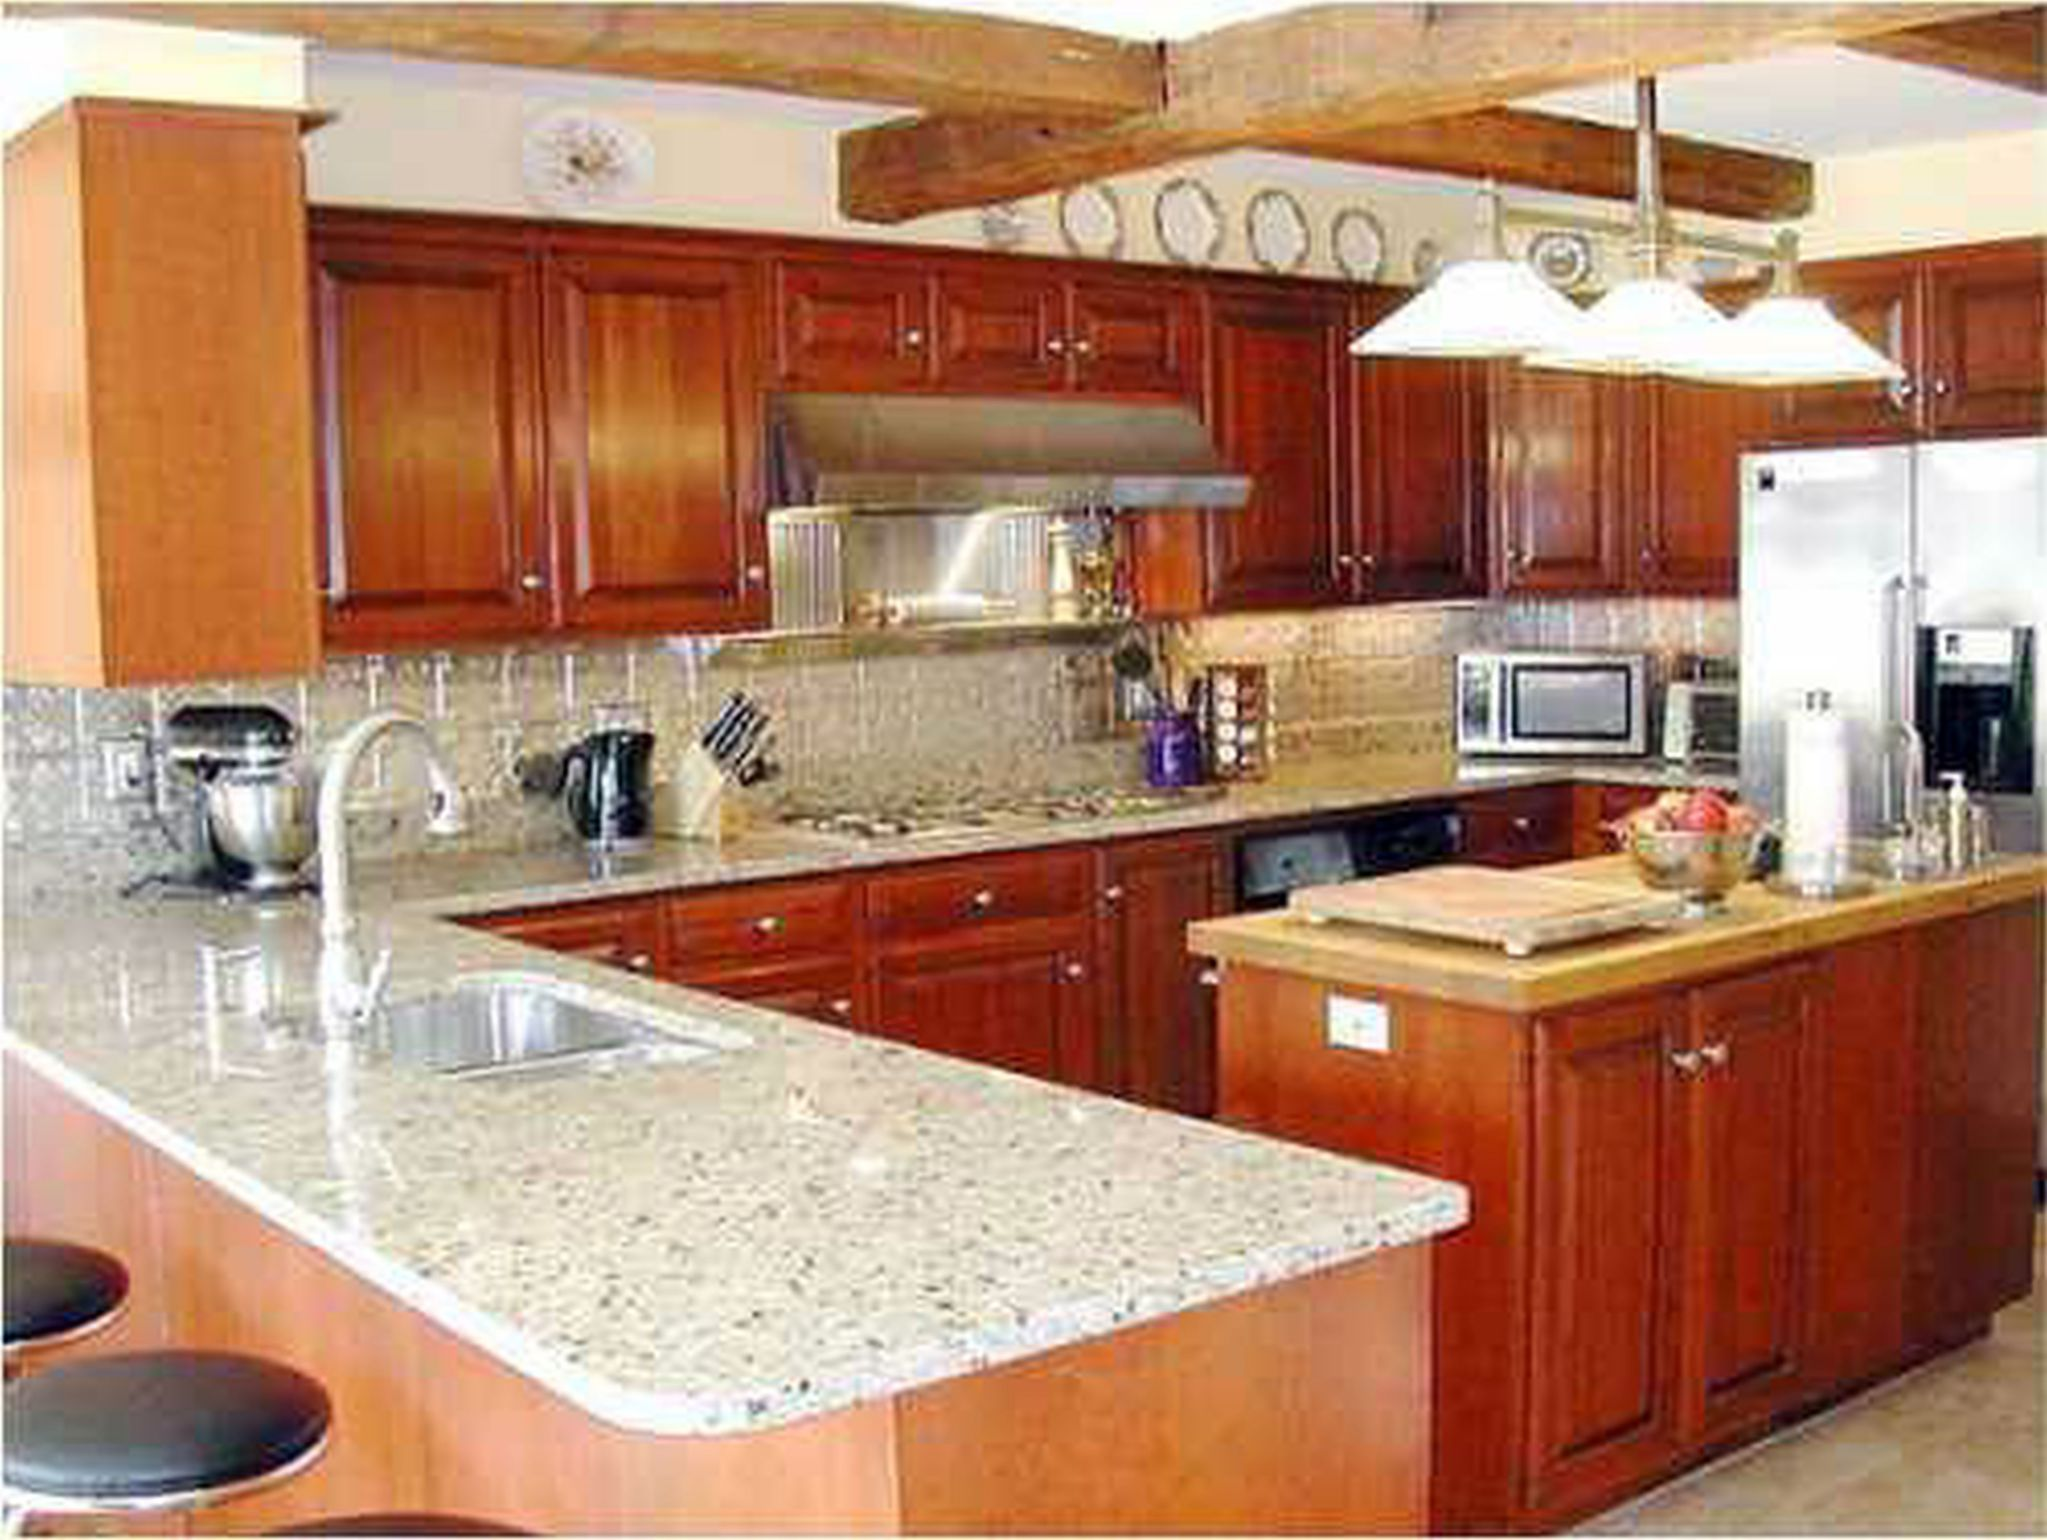 Kitchen counter decor ideas to make your cooking space for Kitchen counter decor